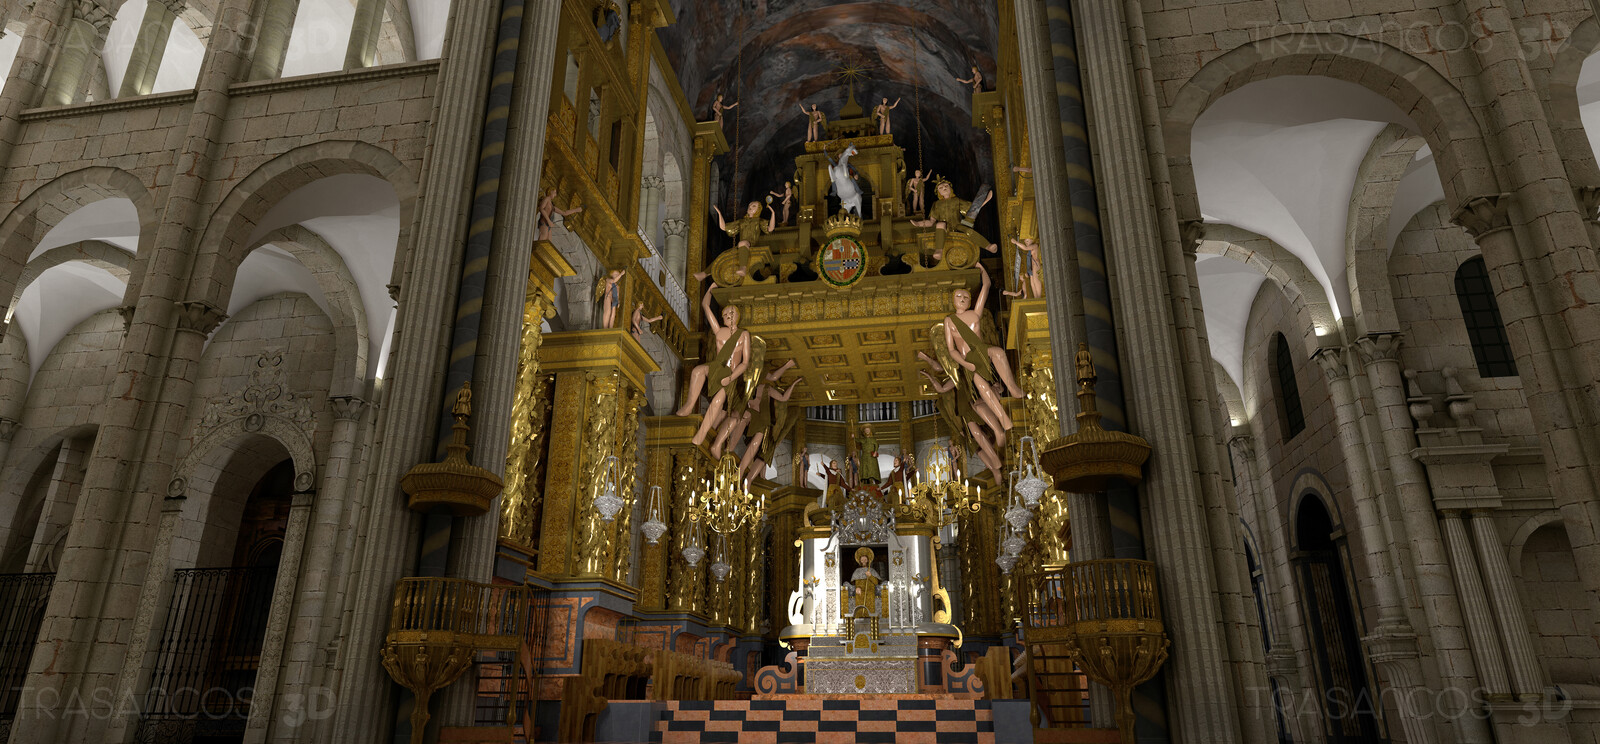 3D illustration. Interior. Main altar of the cathedral.